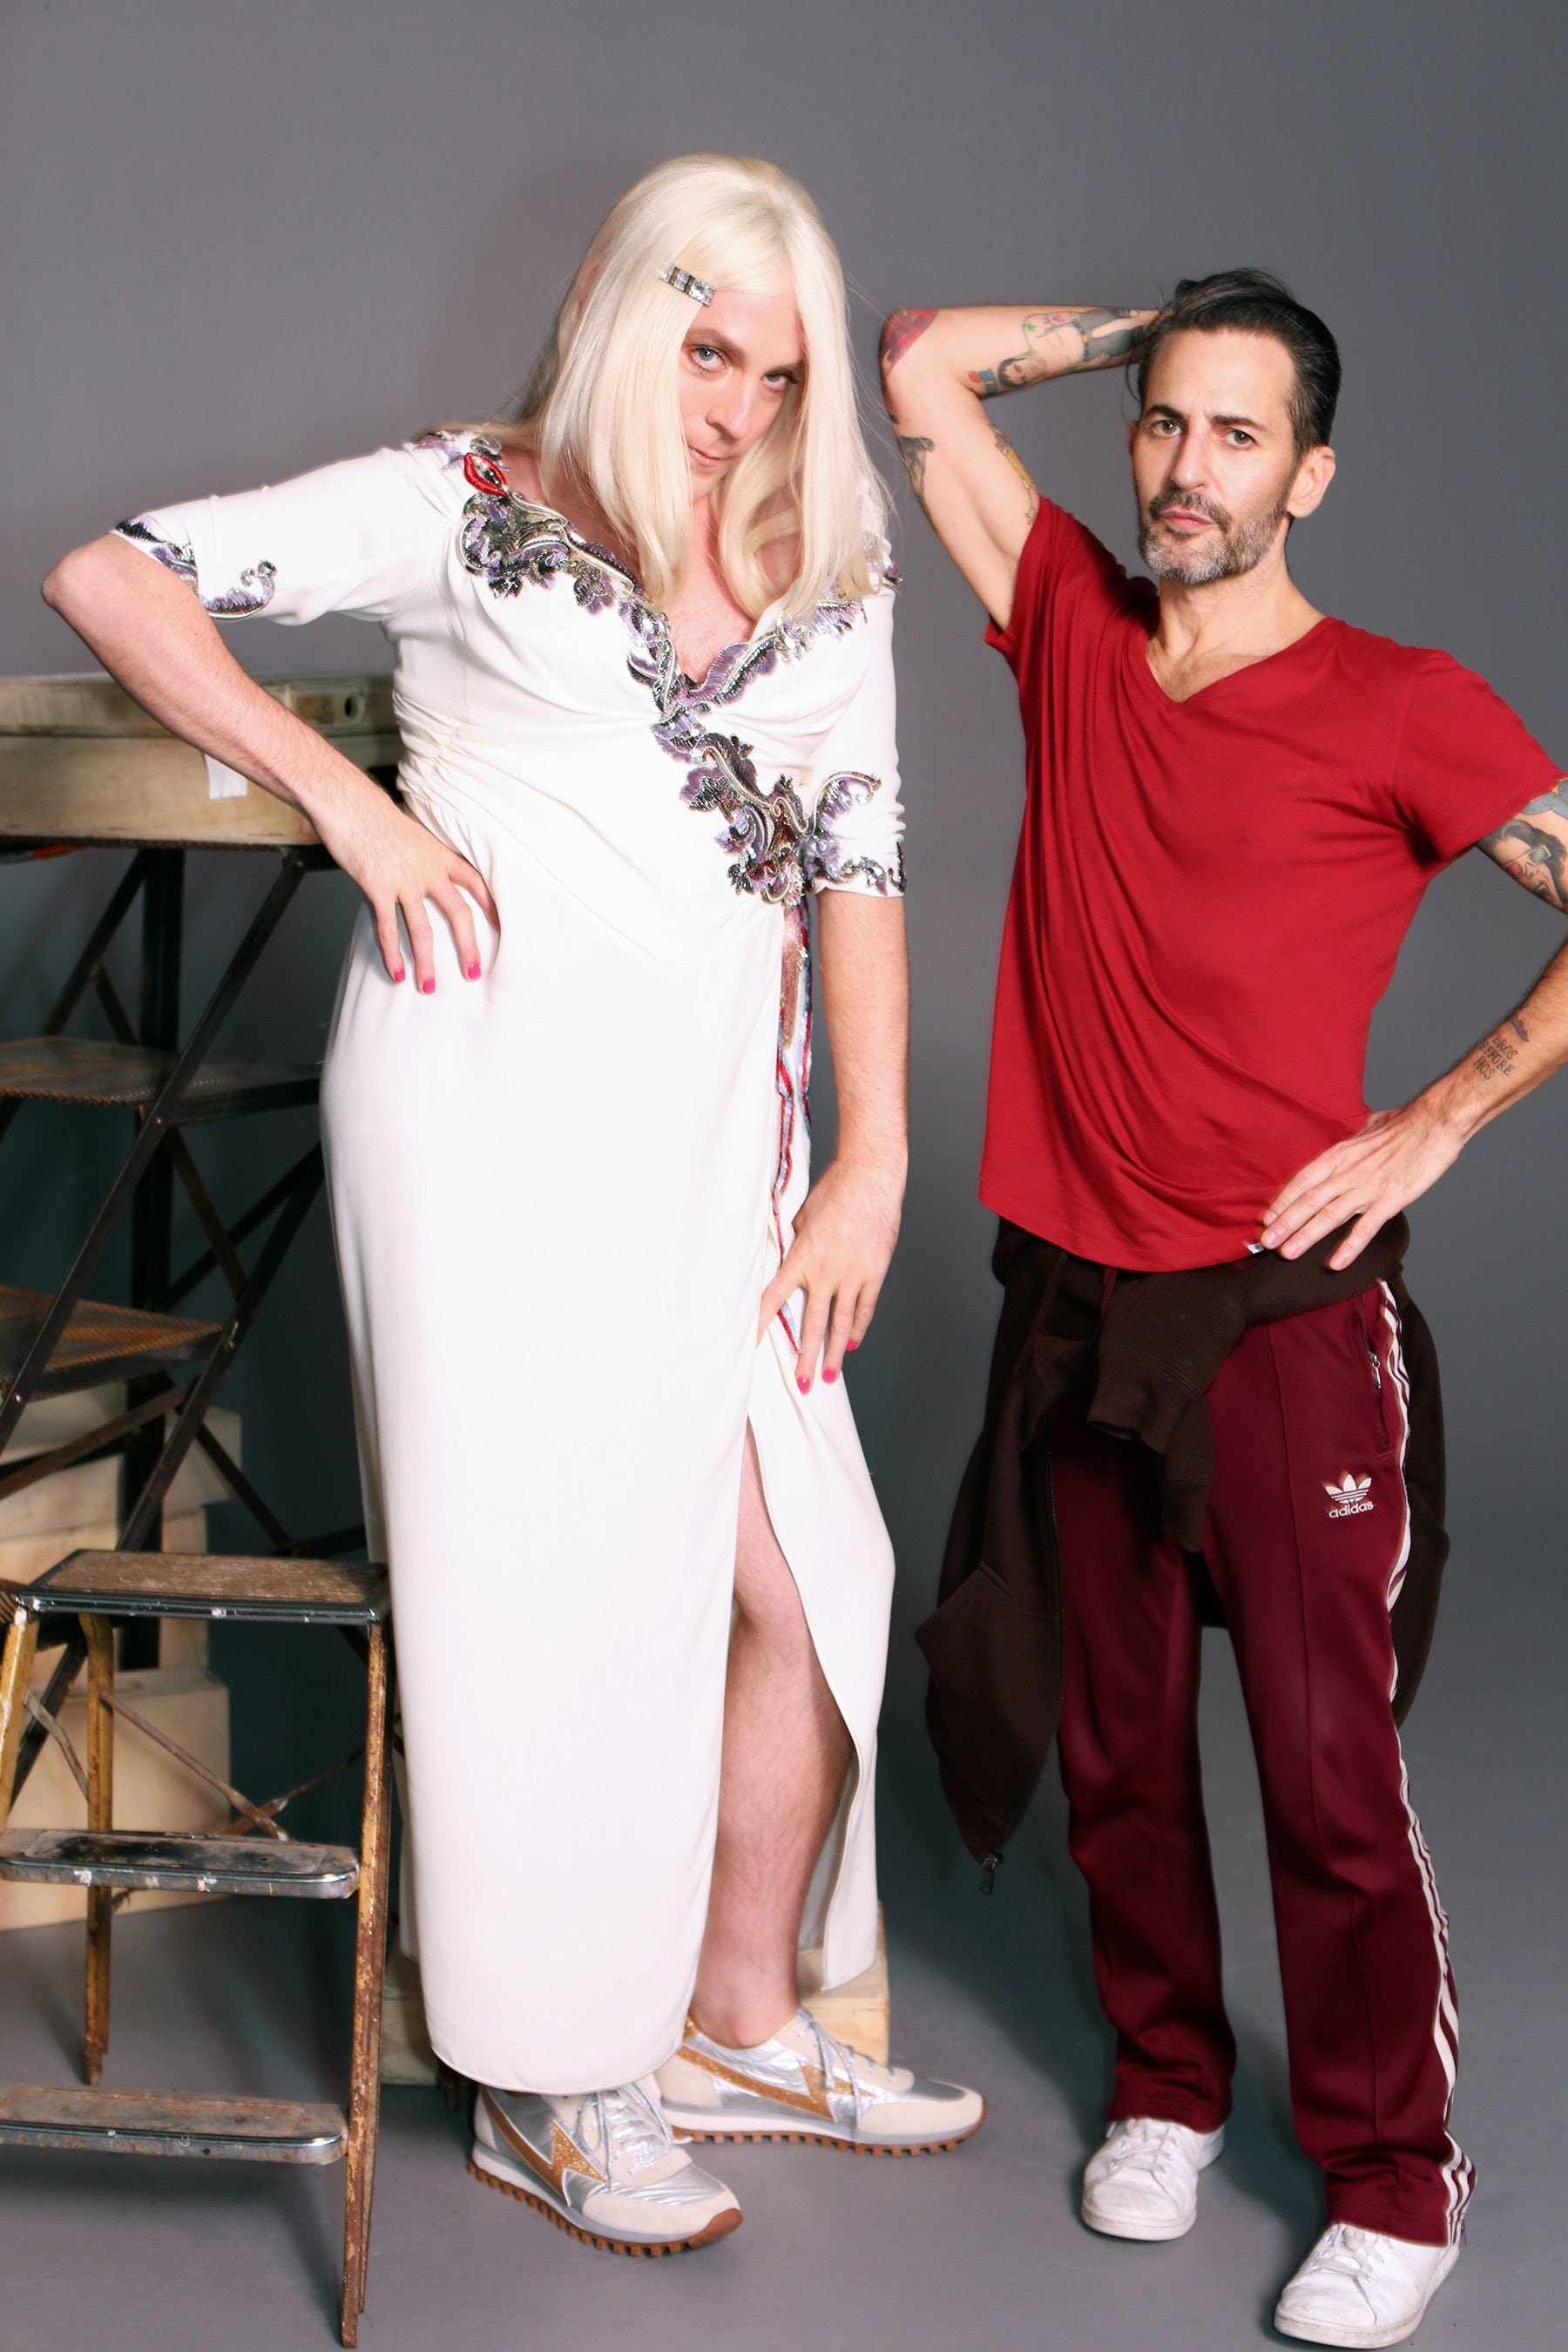 Actor and comedian Drew Droege (left) and Marc Jacobs (right), backstage at the shooting of Marc Jacobs' spring 2016 campaign   Source: Marc Jacobs